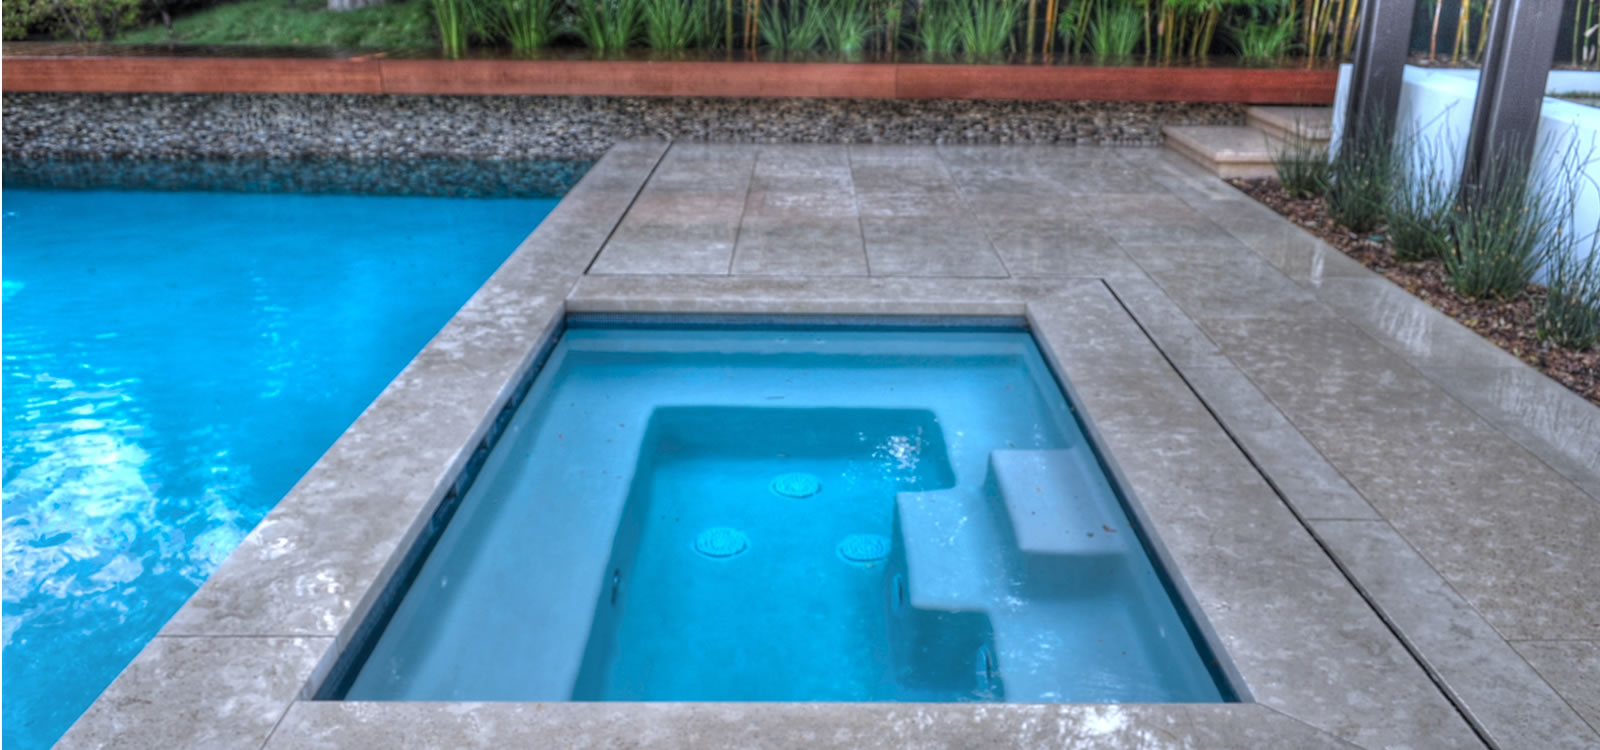 Designer Pools And Spas designer pools outdoor living central texas pool builder austin pool builder austin Beverly Hills Custom Pool Designer